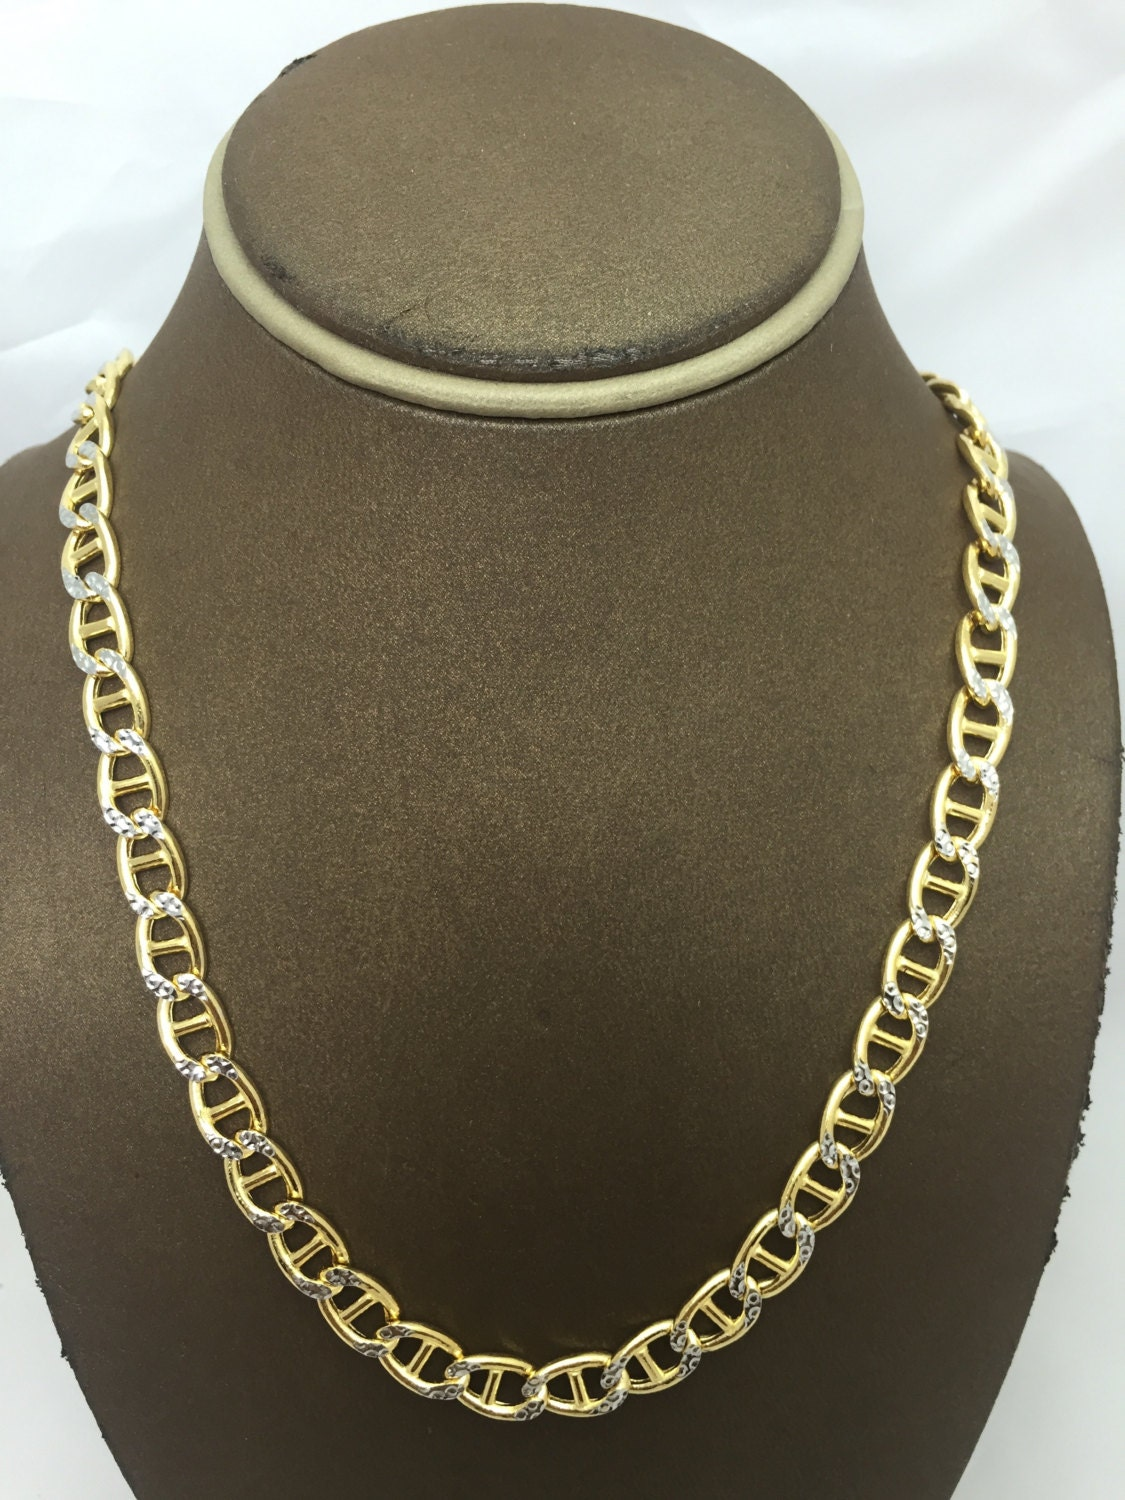 10K Solid Yellow Gold 7.6MM Hollow Gucci Diamond Cut Chain